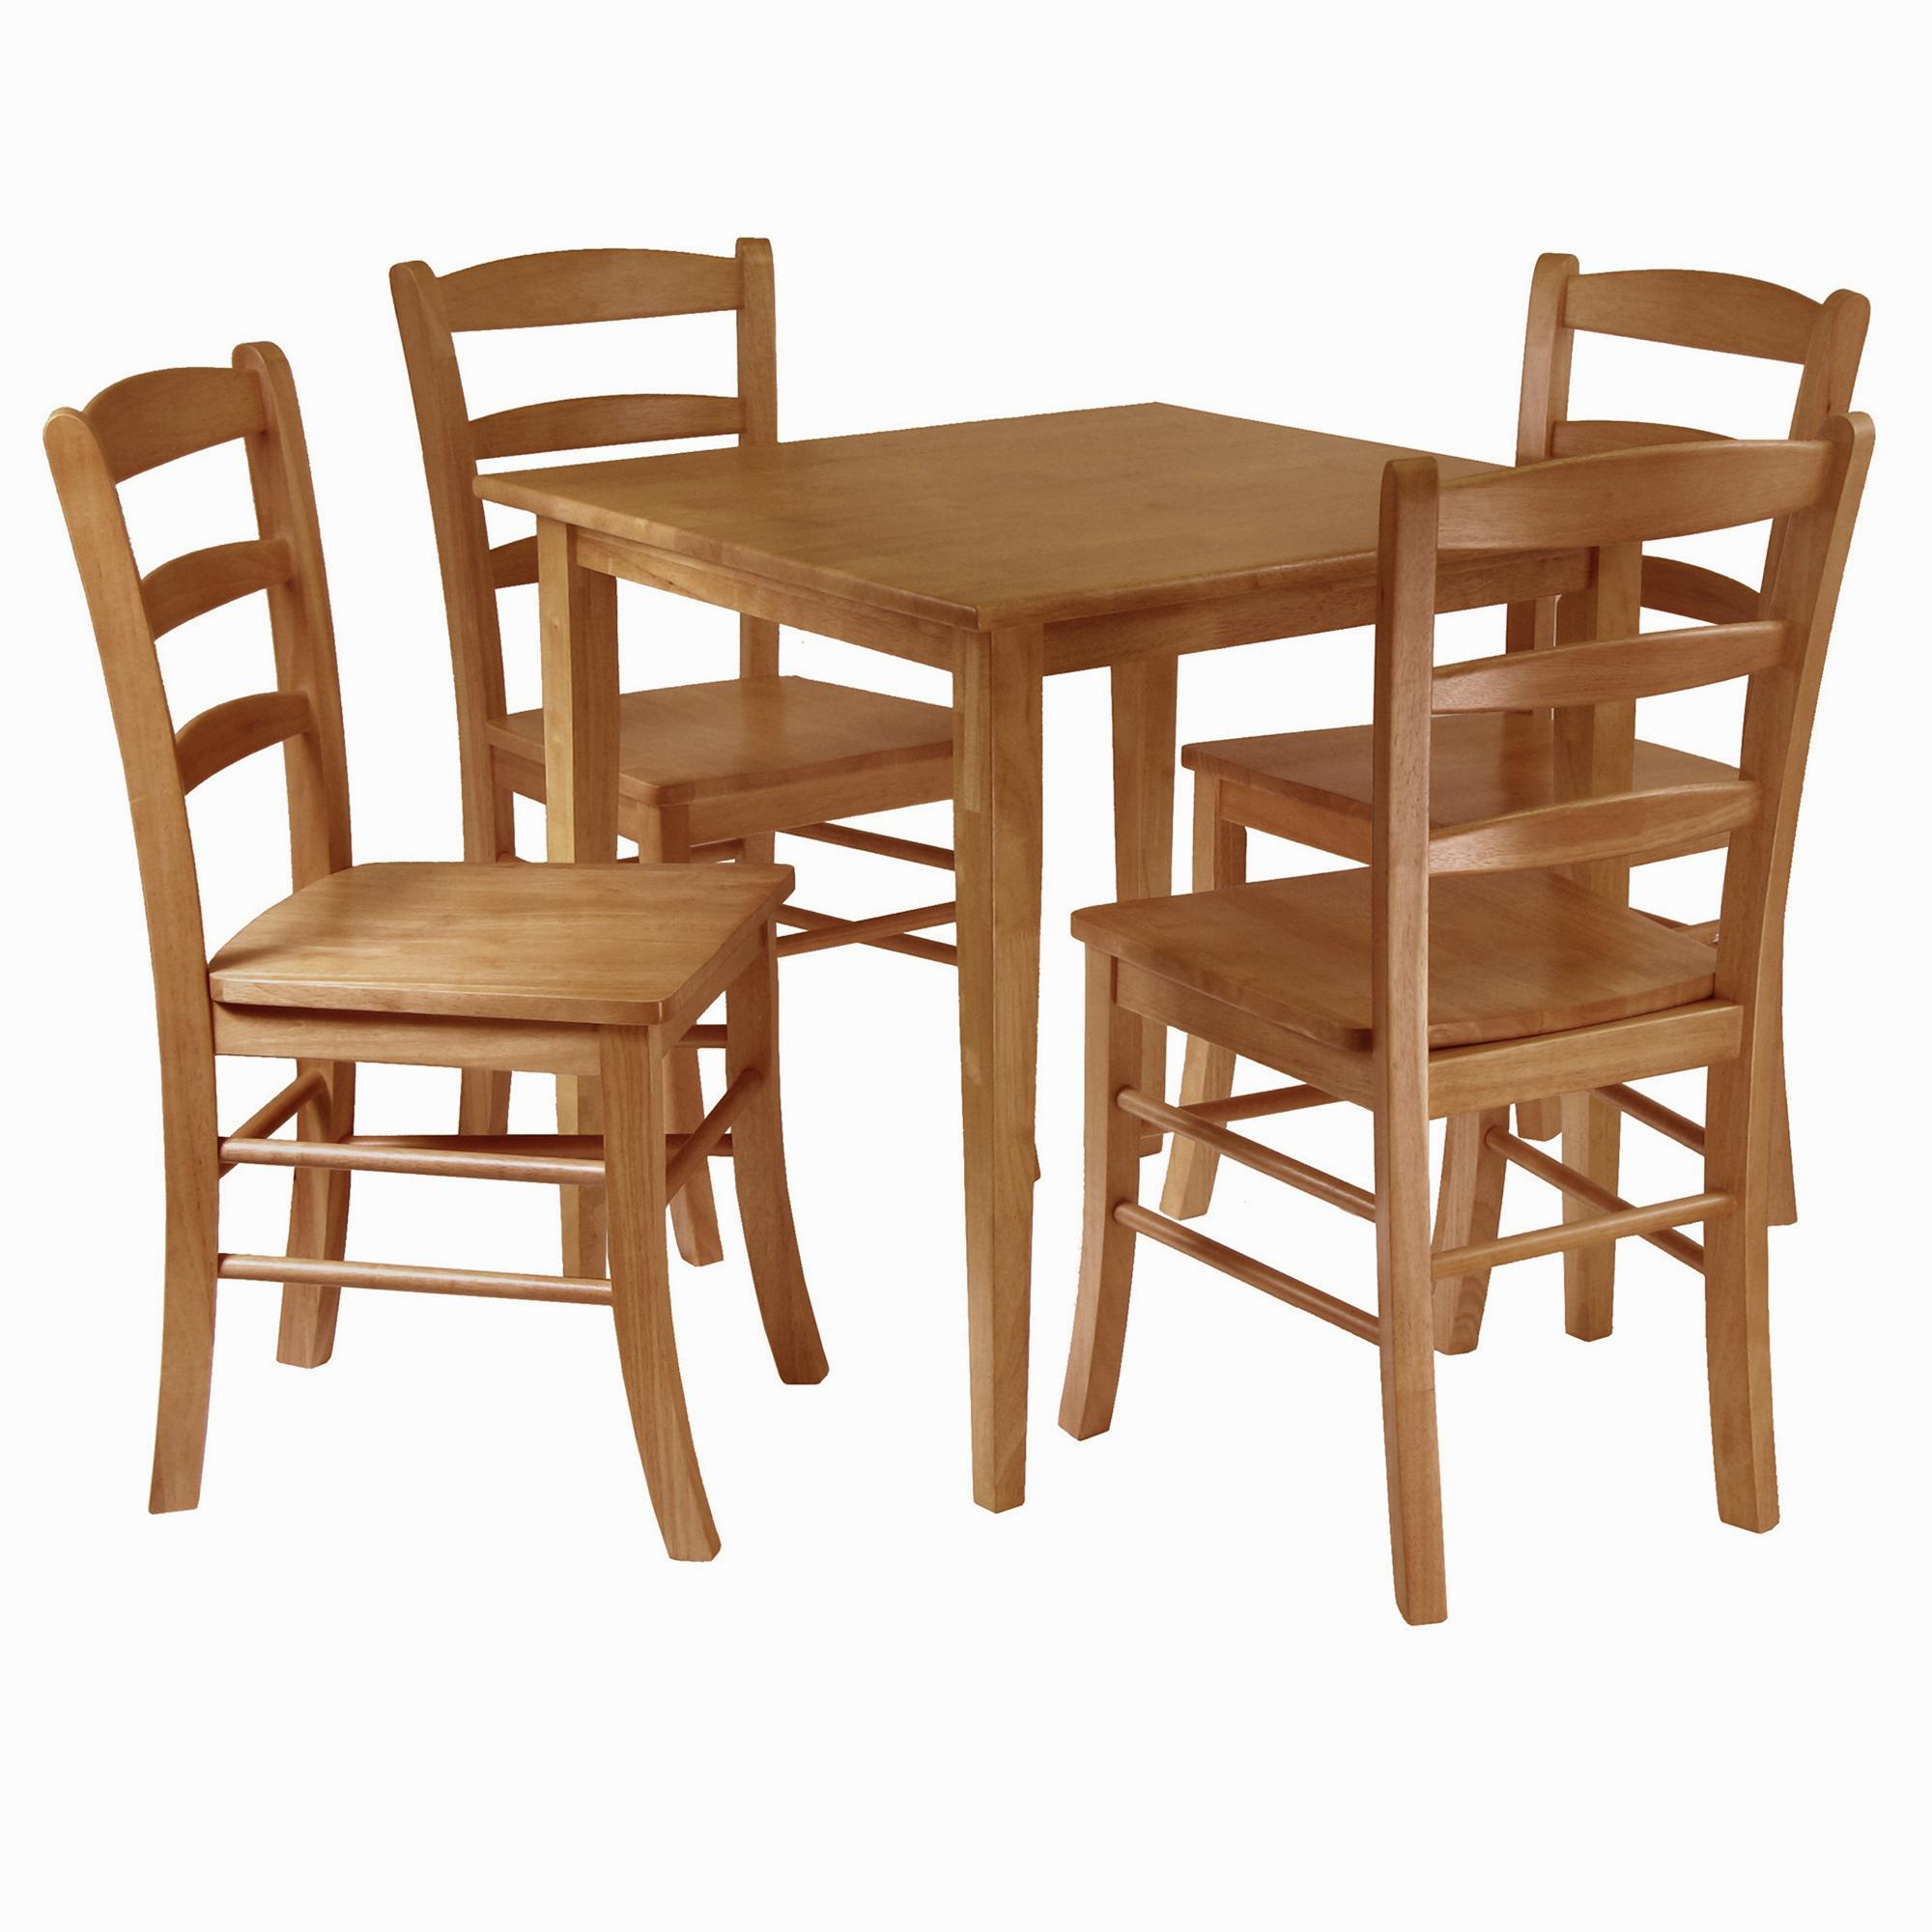 Winsome Groveland 5 Piece Wood Dining Set, Light Oak Finish In Famous Sundberg 5 Piece Solid Wood Dining Sets (View 20 of 20)